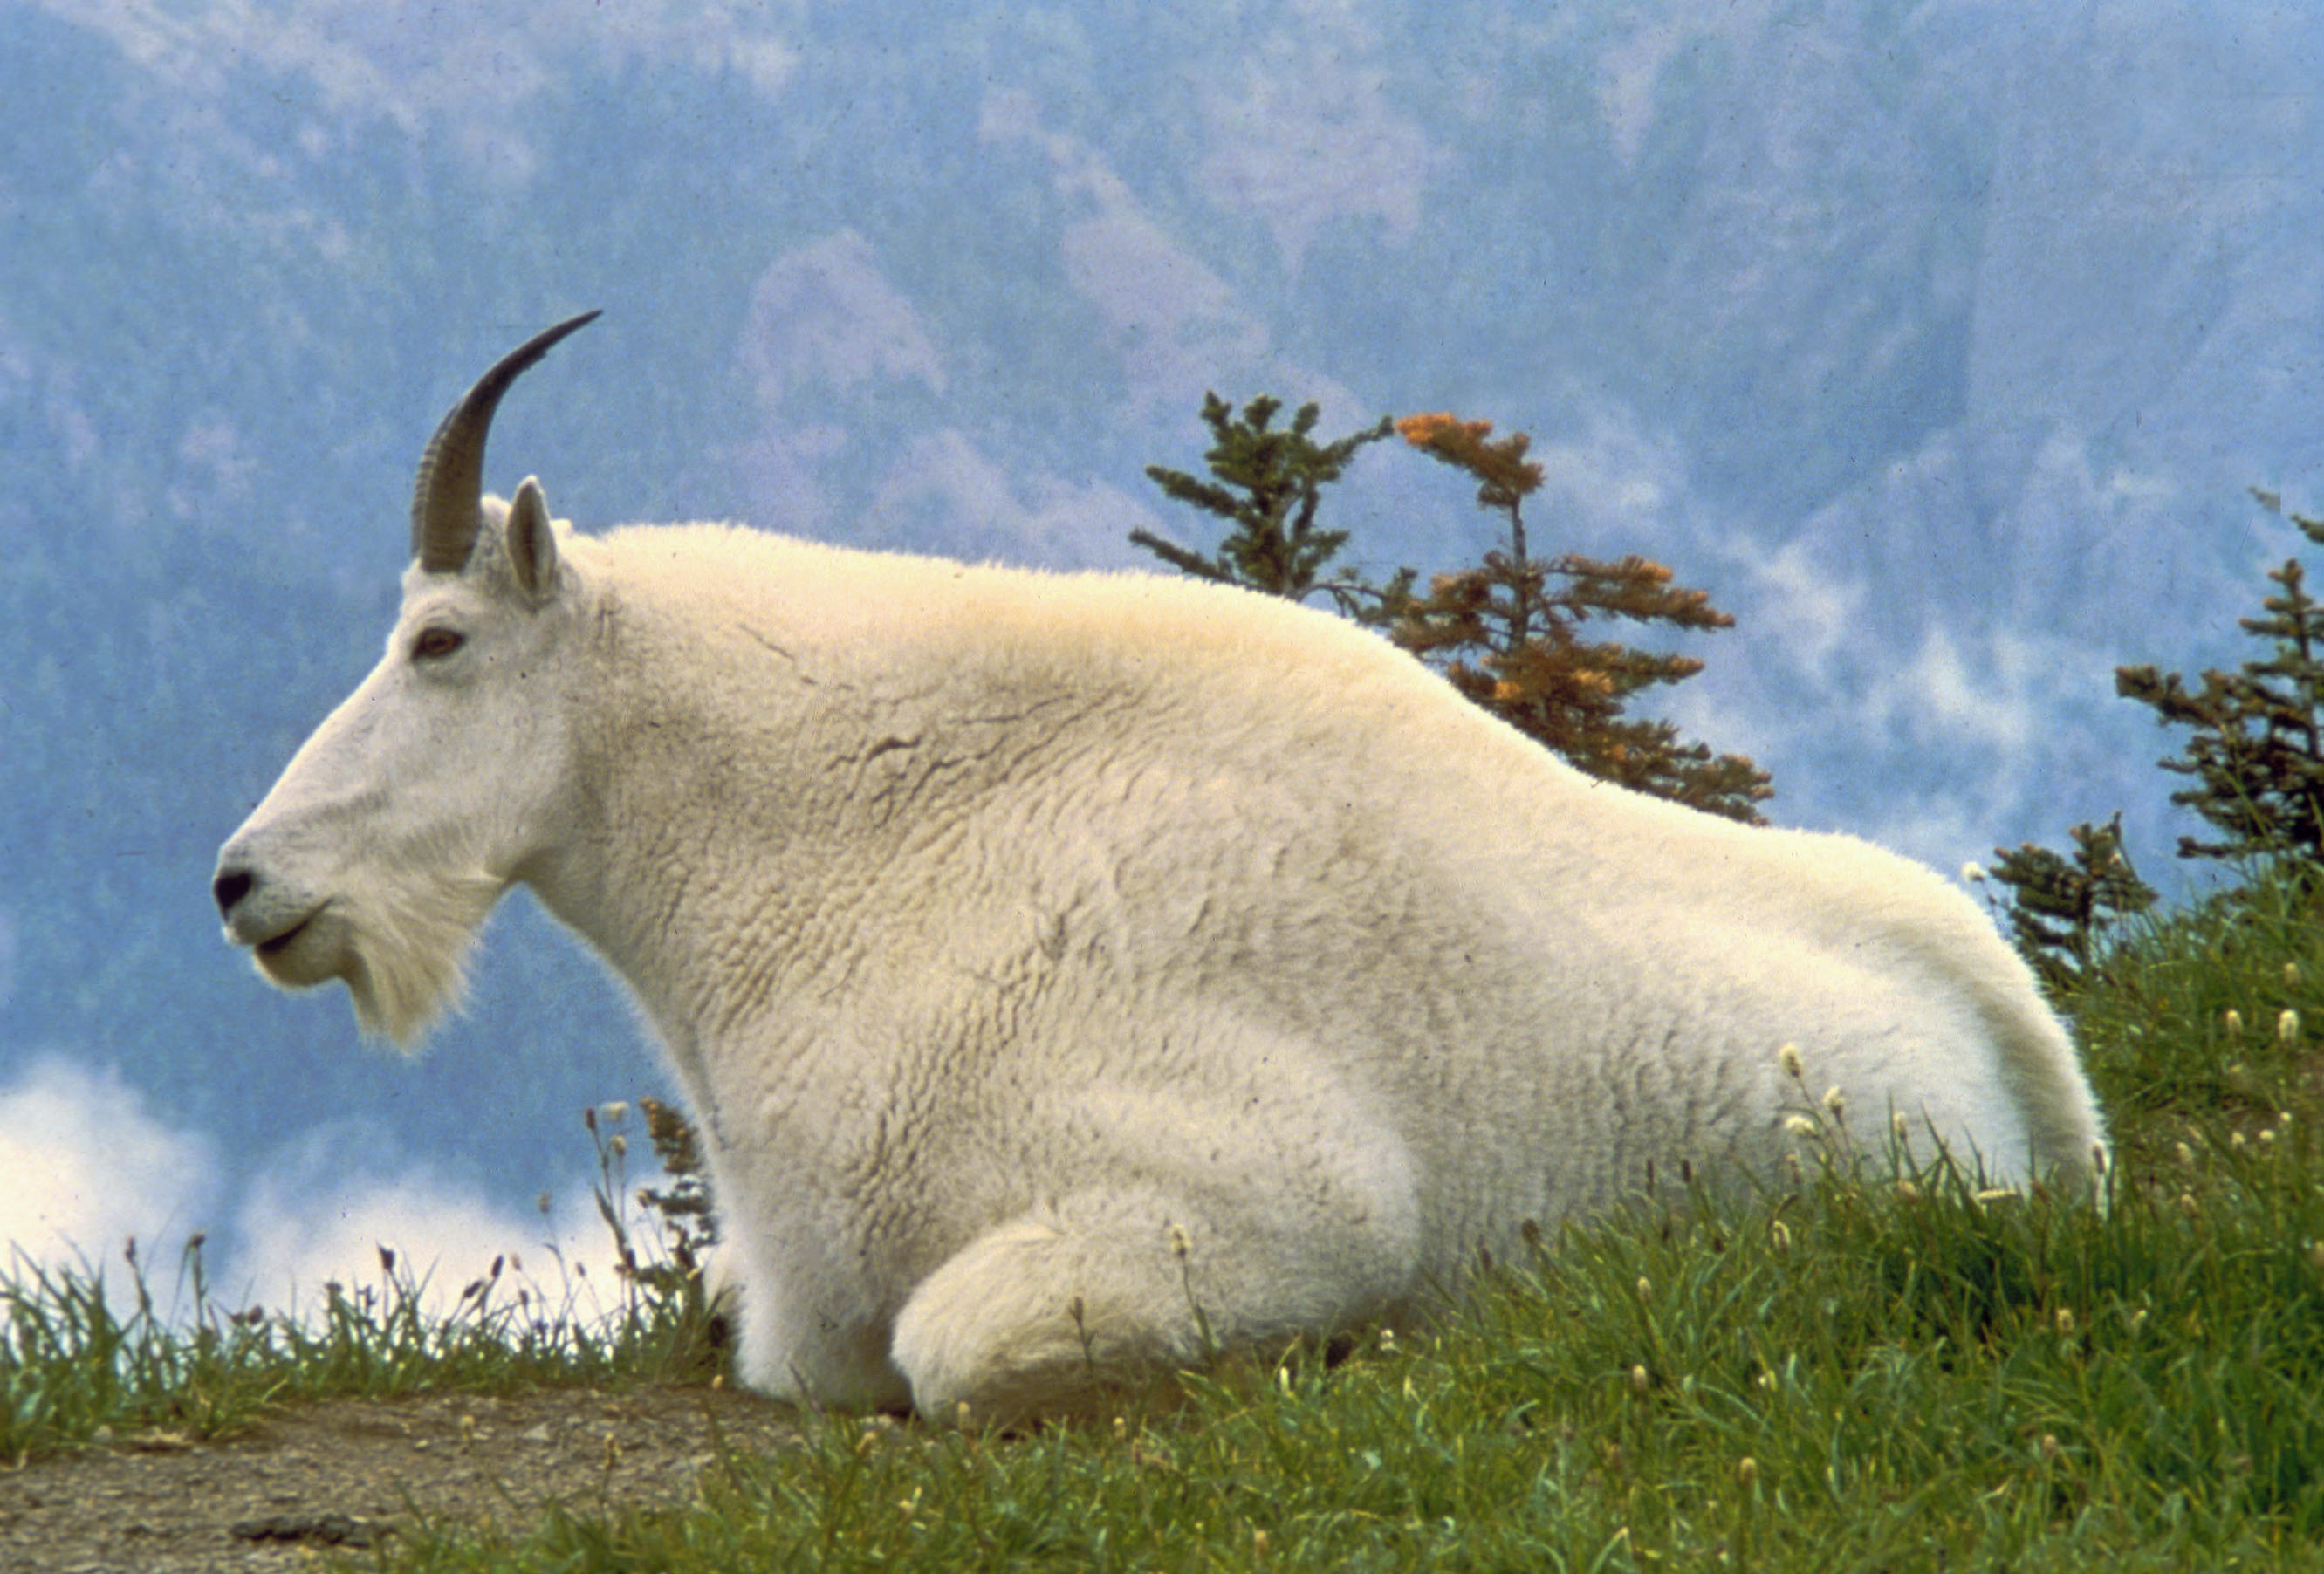 https://upload.wikimedia.org/wikipedia/commons/b/b5/Mountain_Goat_USFWS.jpg